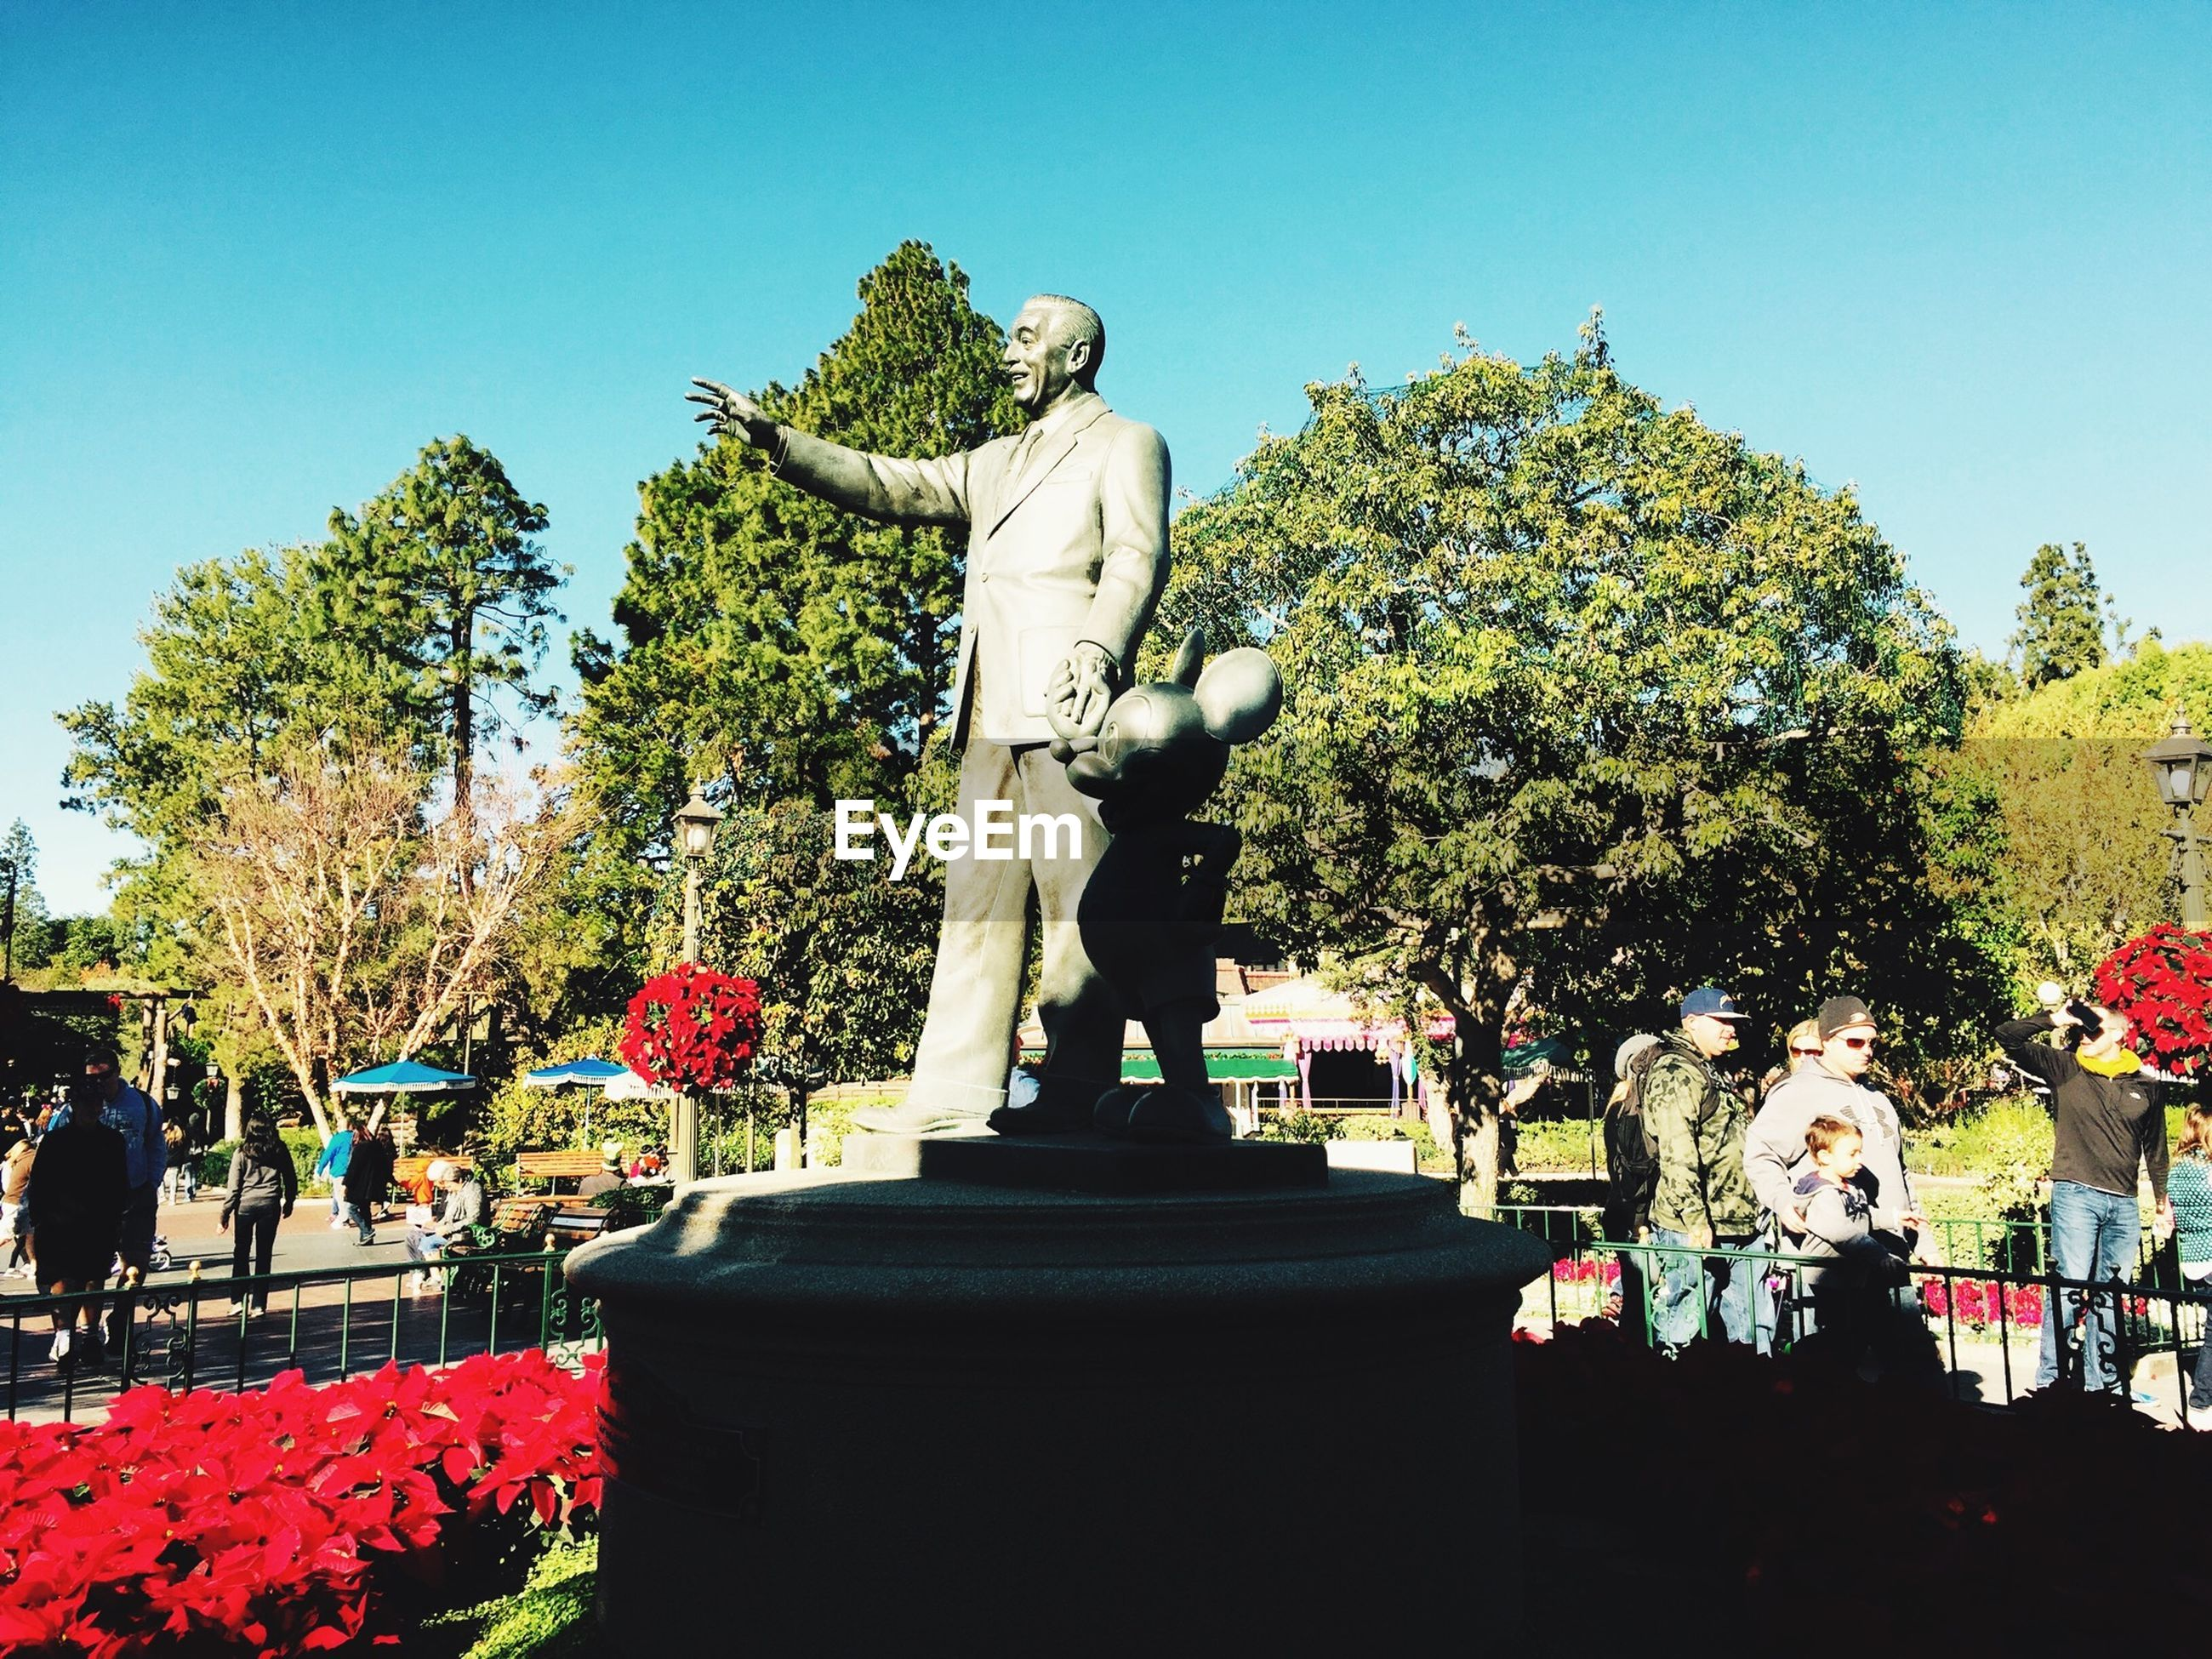 tree, clear sky, statue, sculpture, human representation, art, flower, art and craft, growth, creativity, park - man made space, plant, nature, sky, religion, sunlight, day, outdoors, spirituality